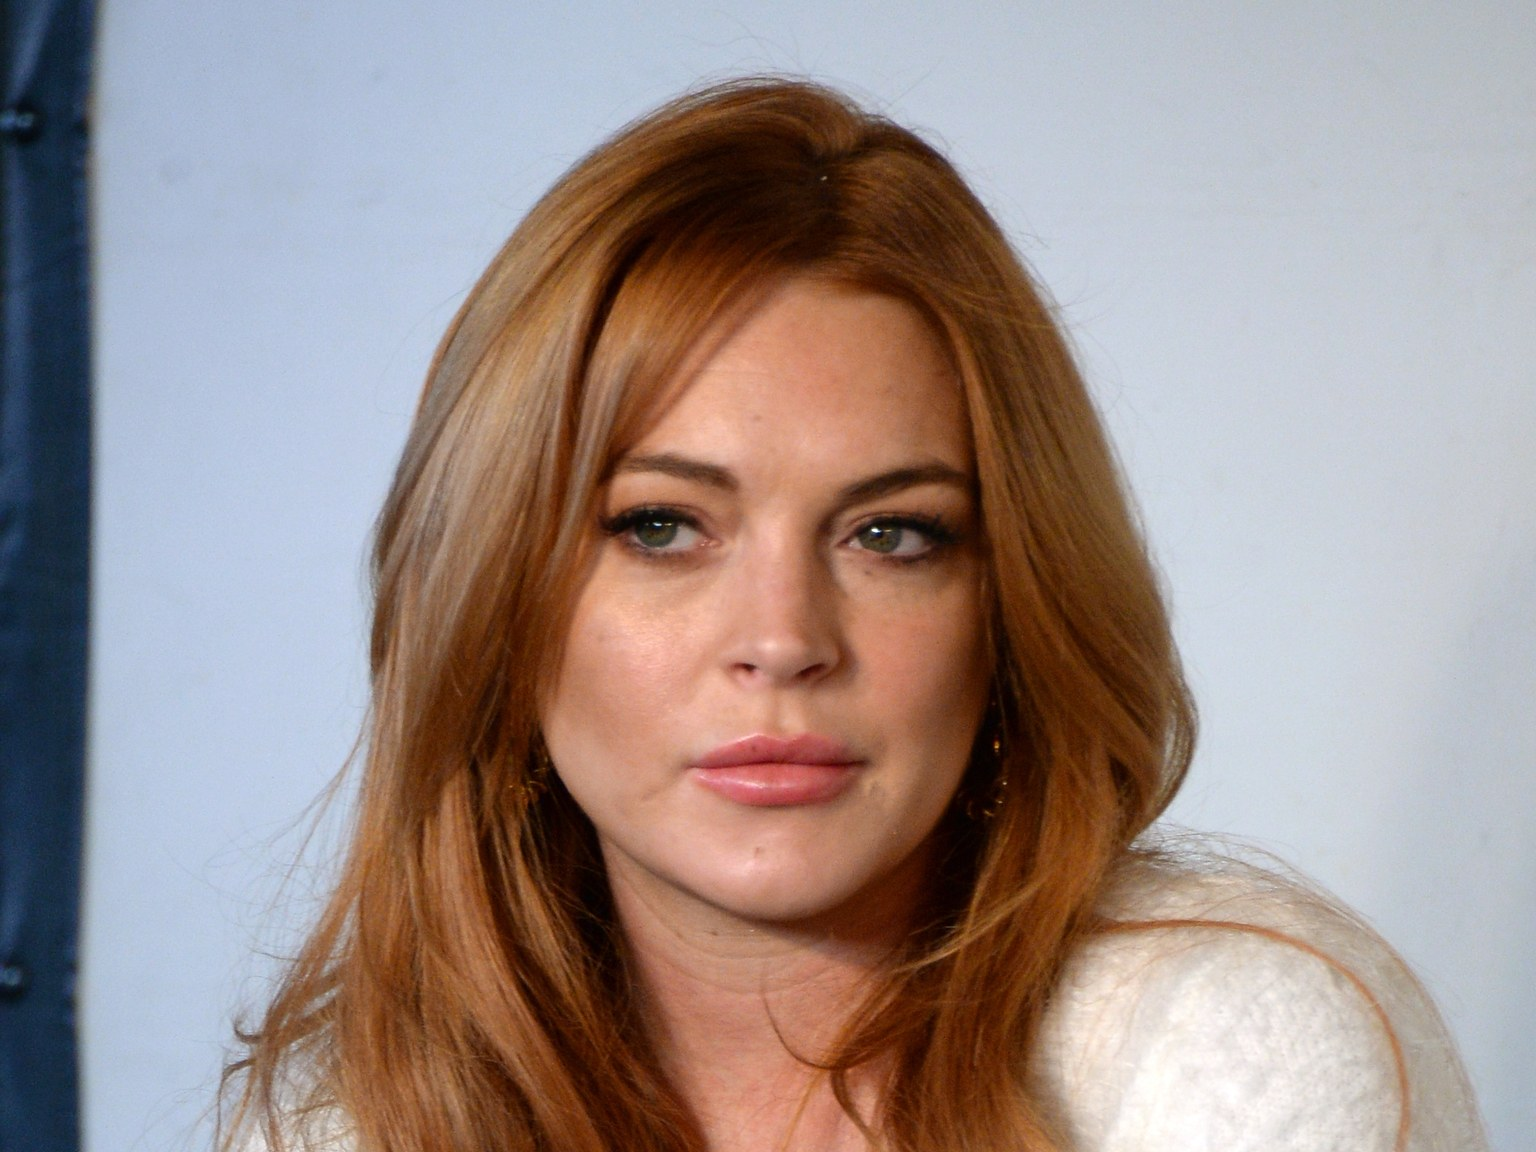 Lindsay Lohan reacts to her viral #DoTheLilo dance